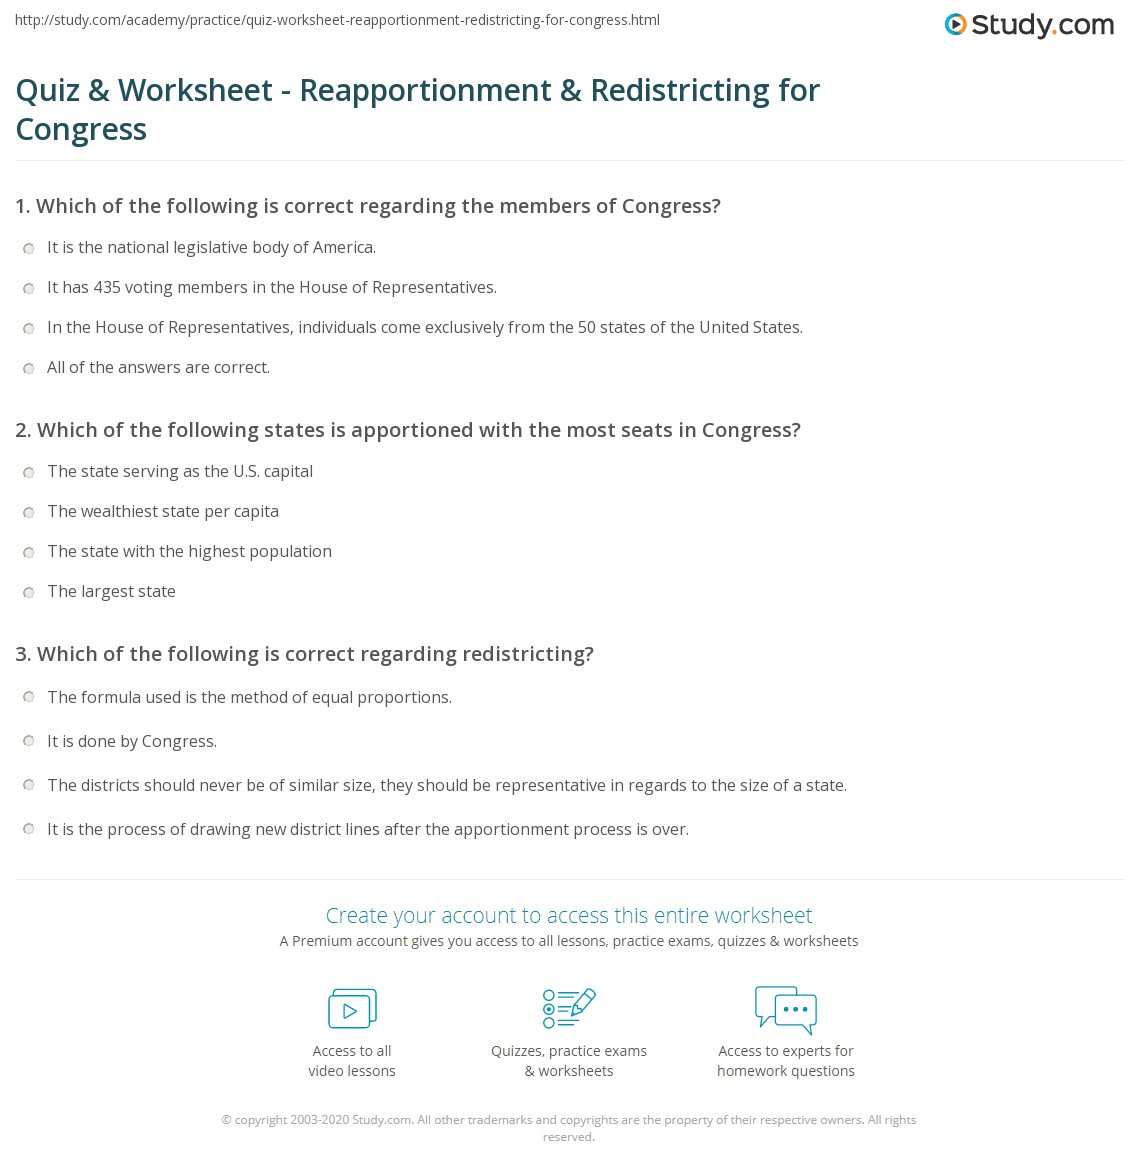 Quiz & Worksheet - Reapportionment & Redistricting for ...